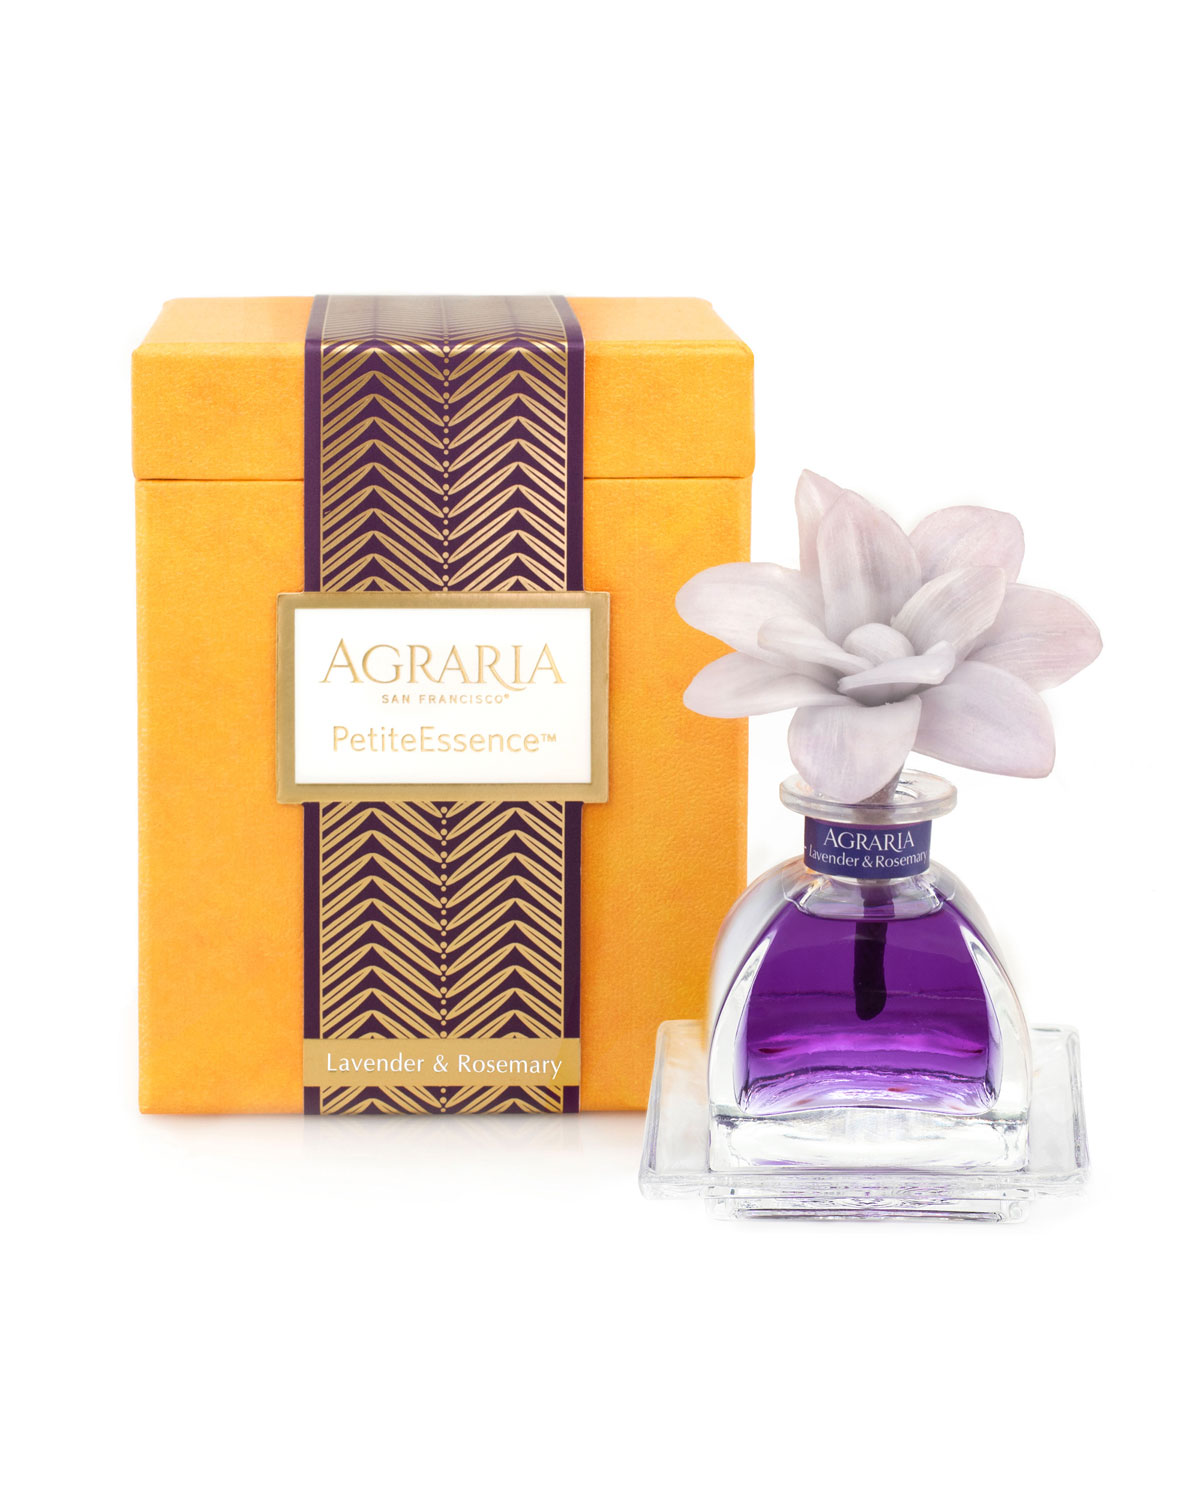 Agraria 1.7 oz. Lavender Rosemary PetitEssence Diffuser